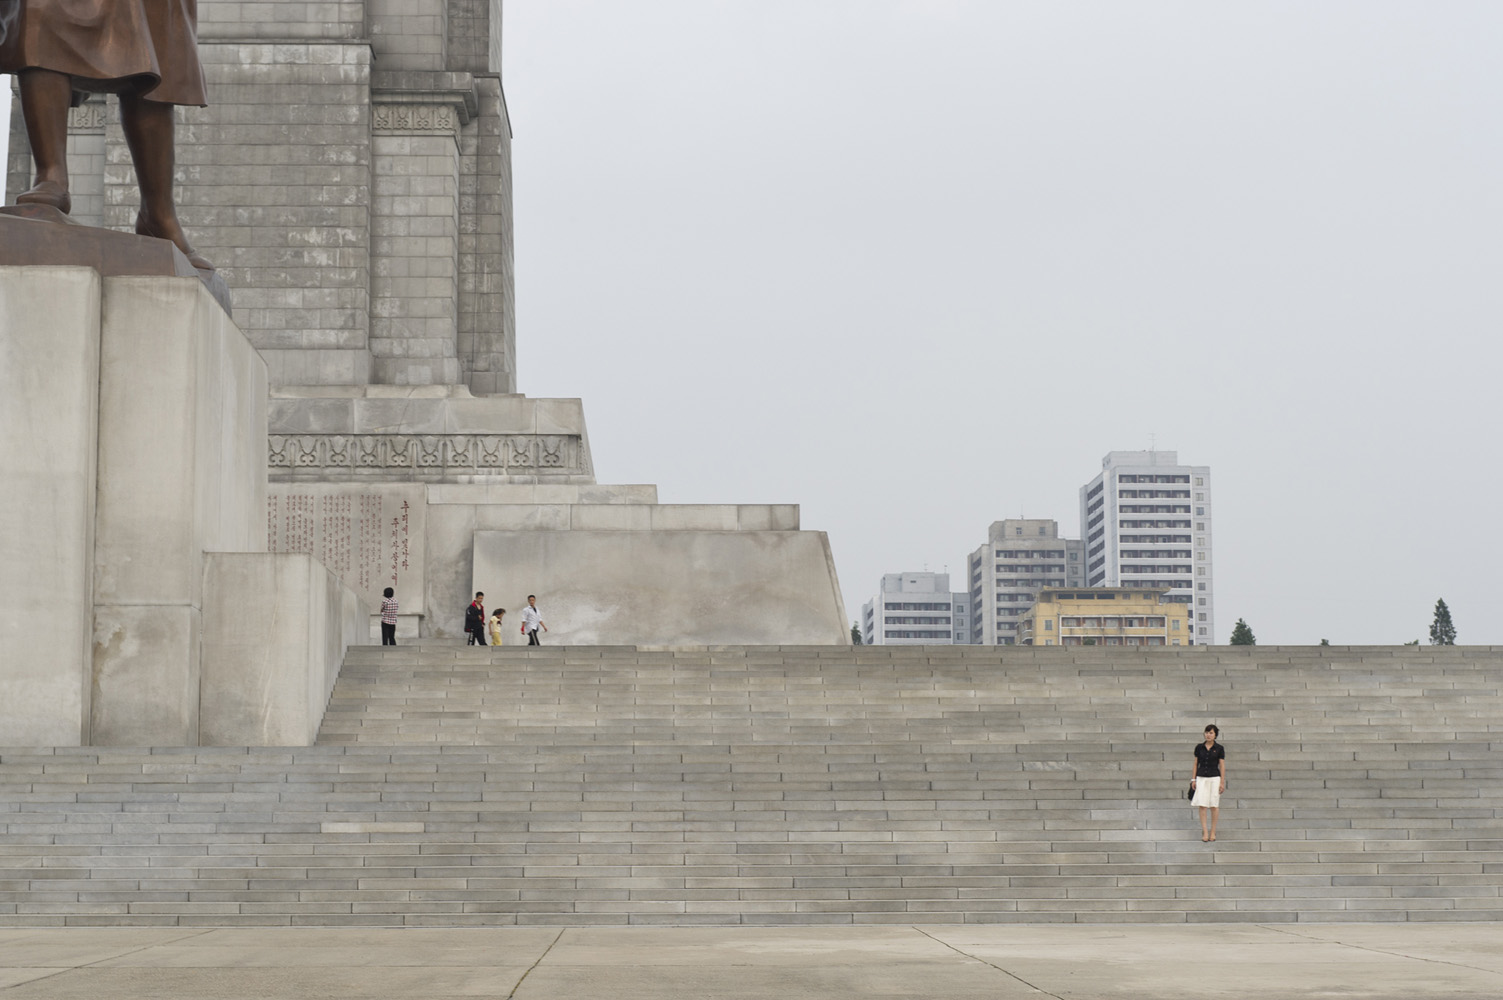 North Korean woman standing at the stairs of the tower of the Juche Idea, a 170-meter tall monument.  It is presumed to be modeled on the Washington Monument, which it surpasses in height by less than a metre.